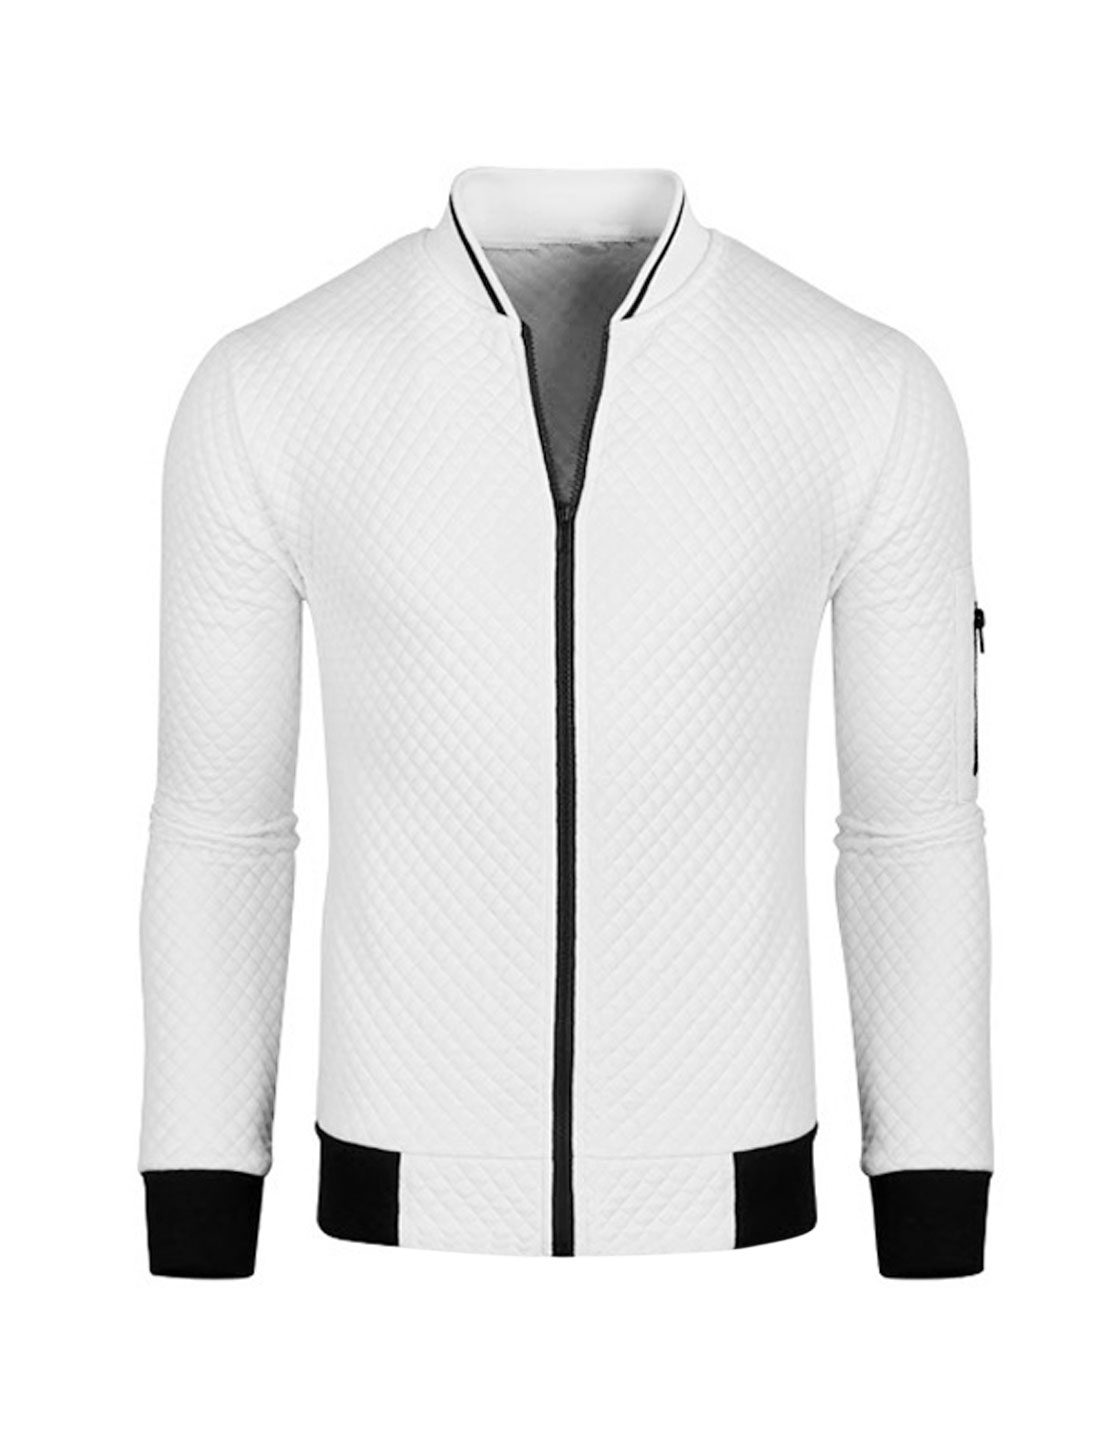 Men Zip Up Long Sleeves Stand Collar Quilted Jacket White M